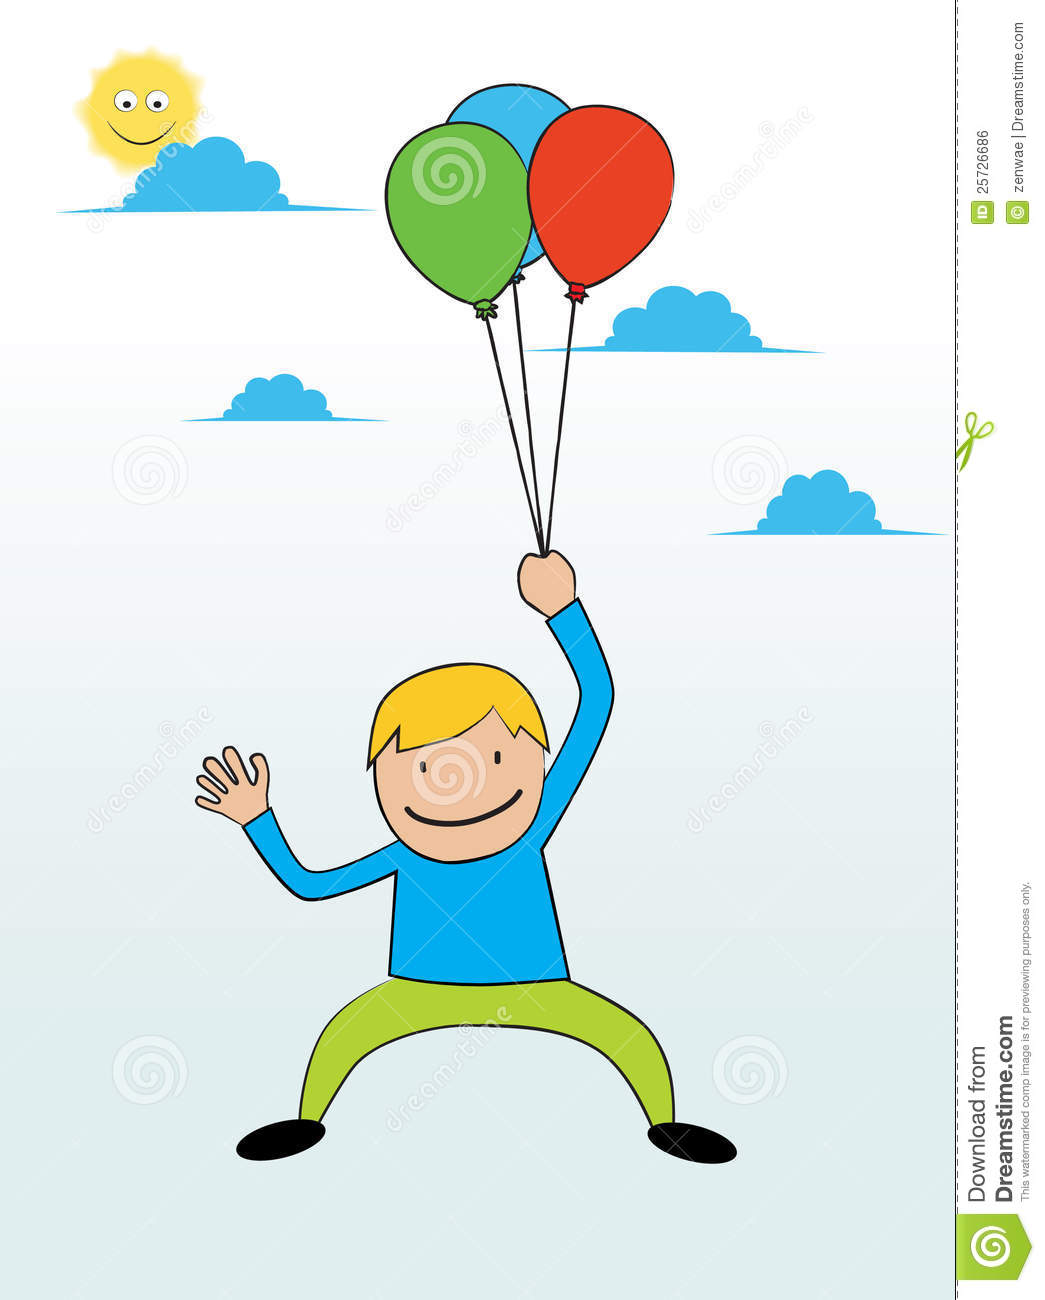 Flying With Baloons Royalty Free Stock Image - Image: 25726686